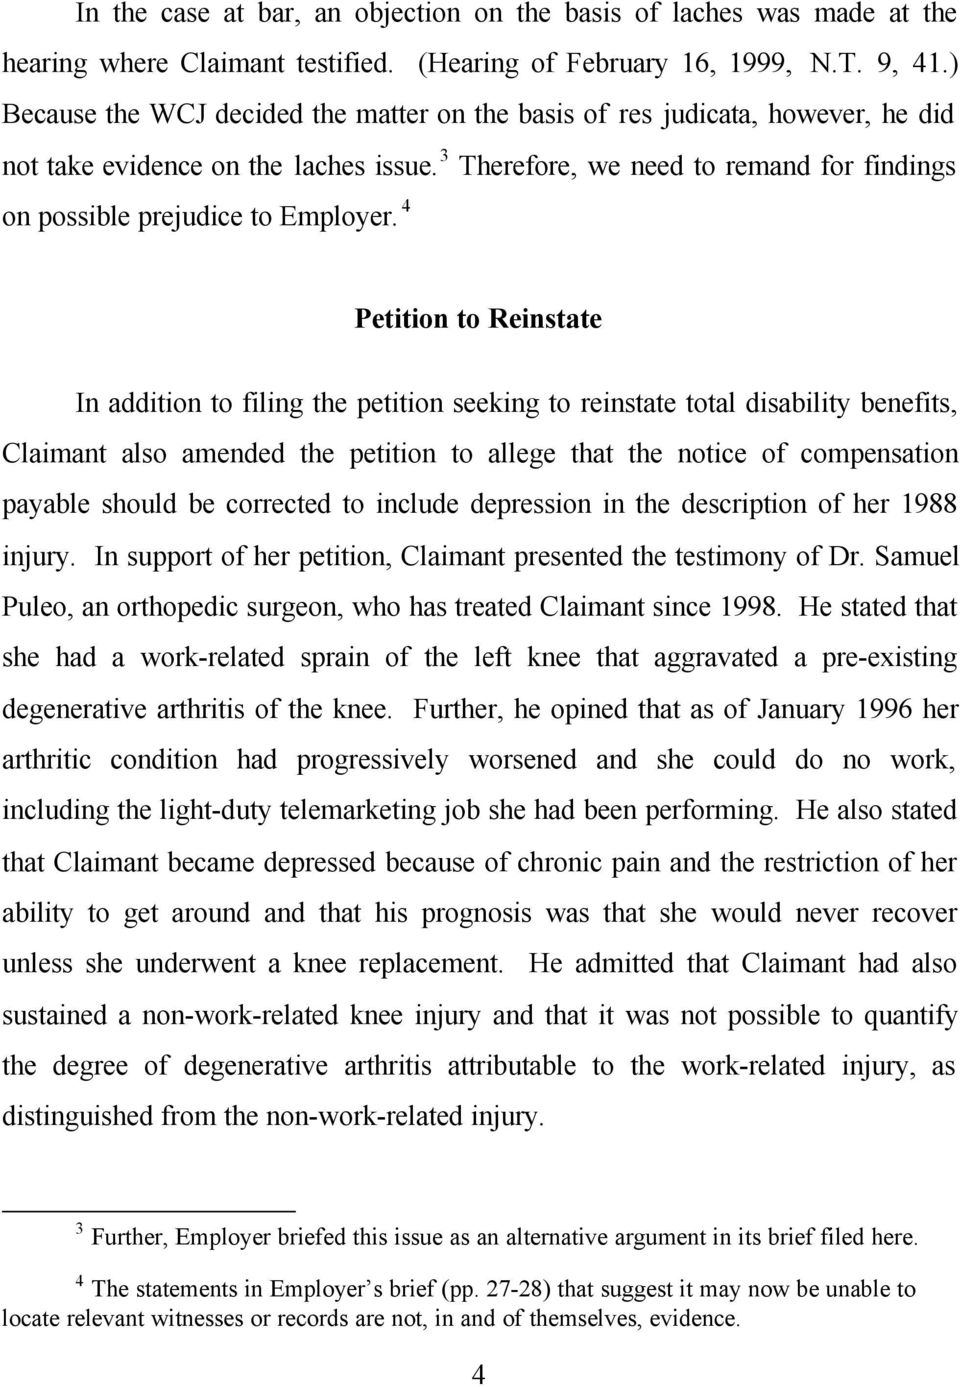 4 Petition to Reinstate In addition to filing the petition seeking to reinstate total disability benefits, Claimant also amended the petition to allege that the notice of compensation payable should